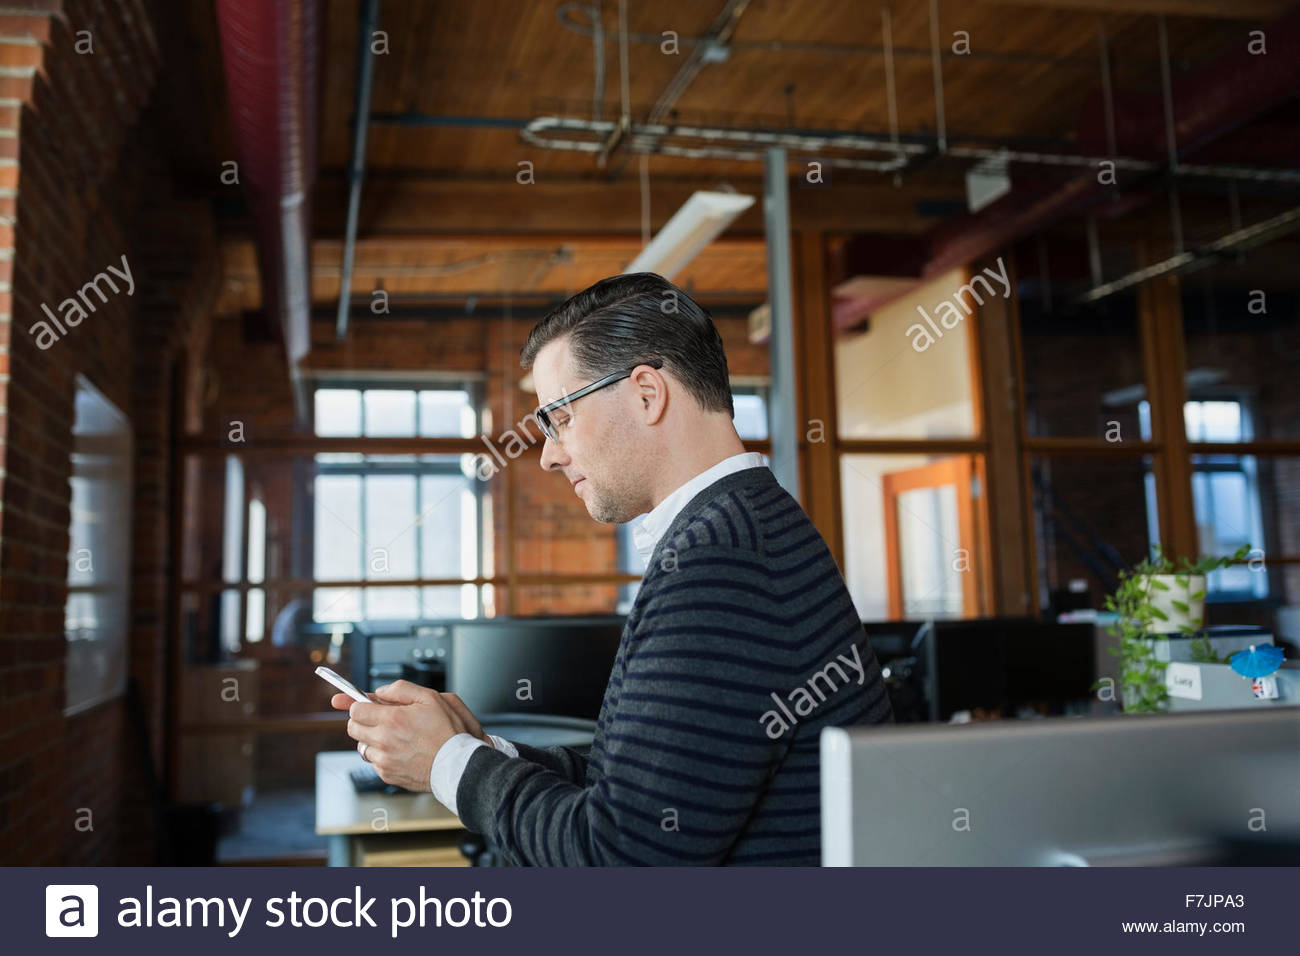 Businessman texting in office - Stock Image